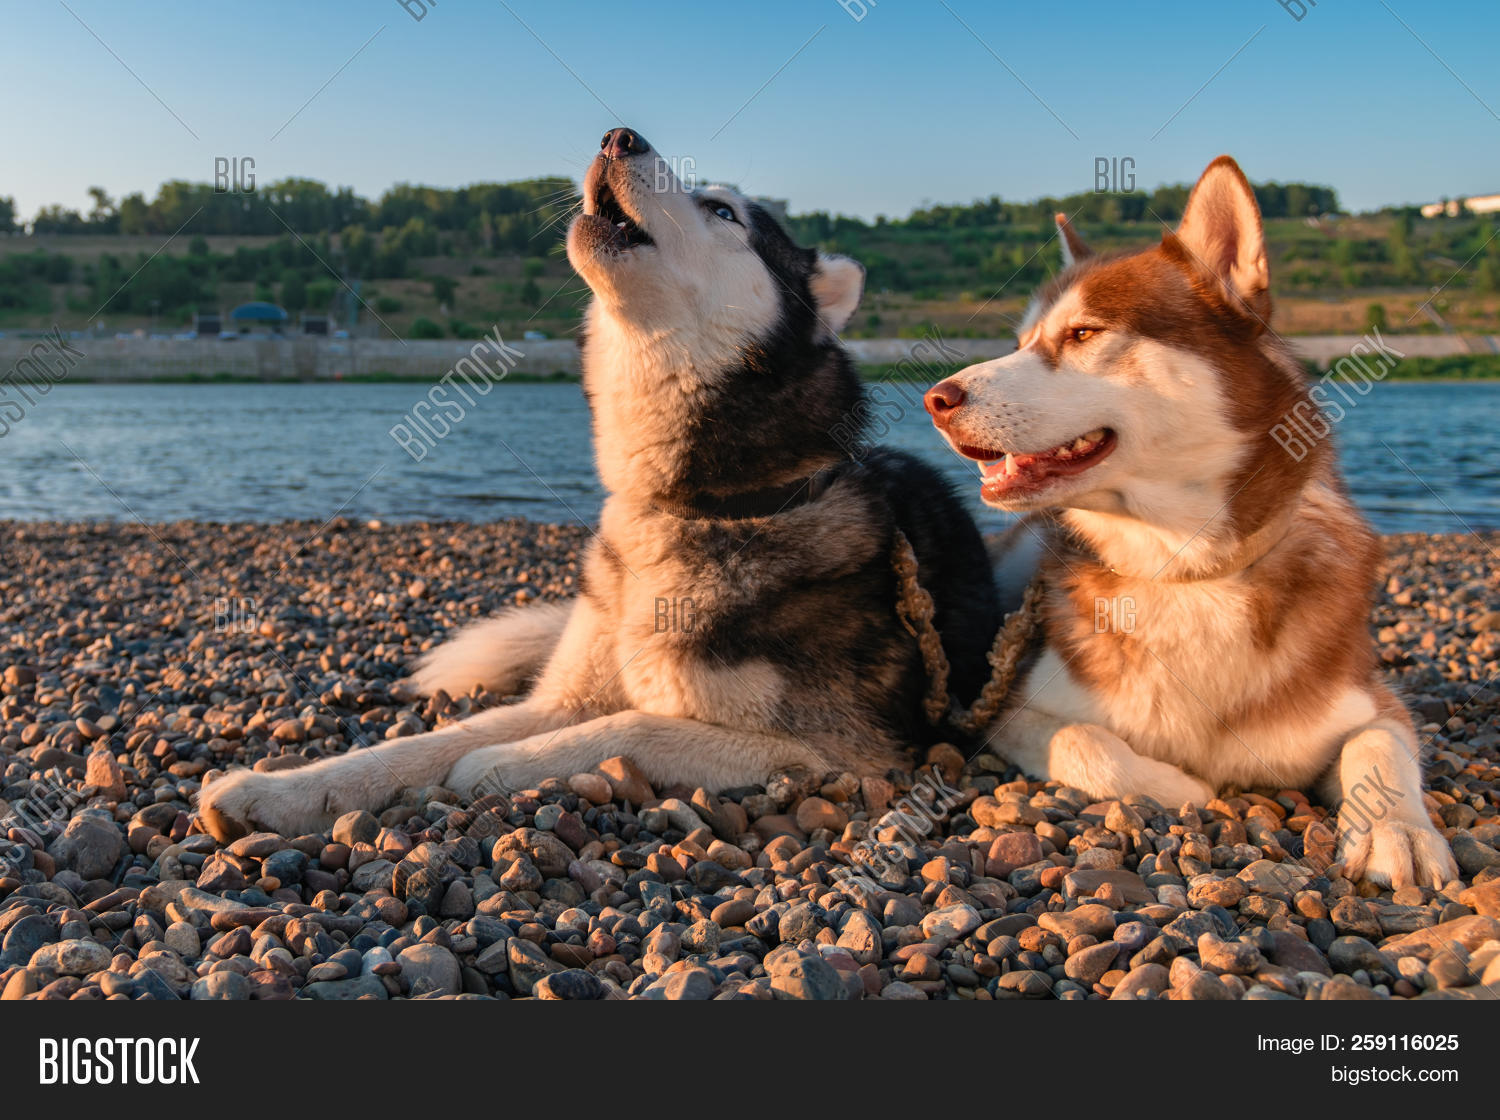 Couple Cute Dogs Howl Image Photo Free Trial Bigstock